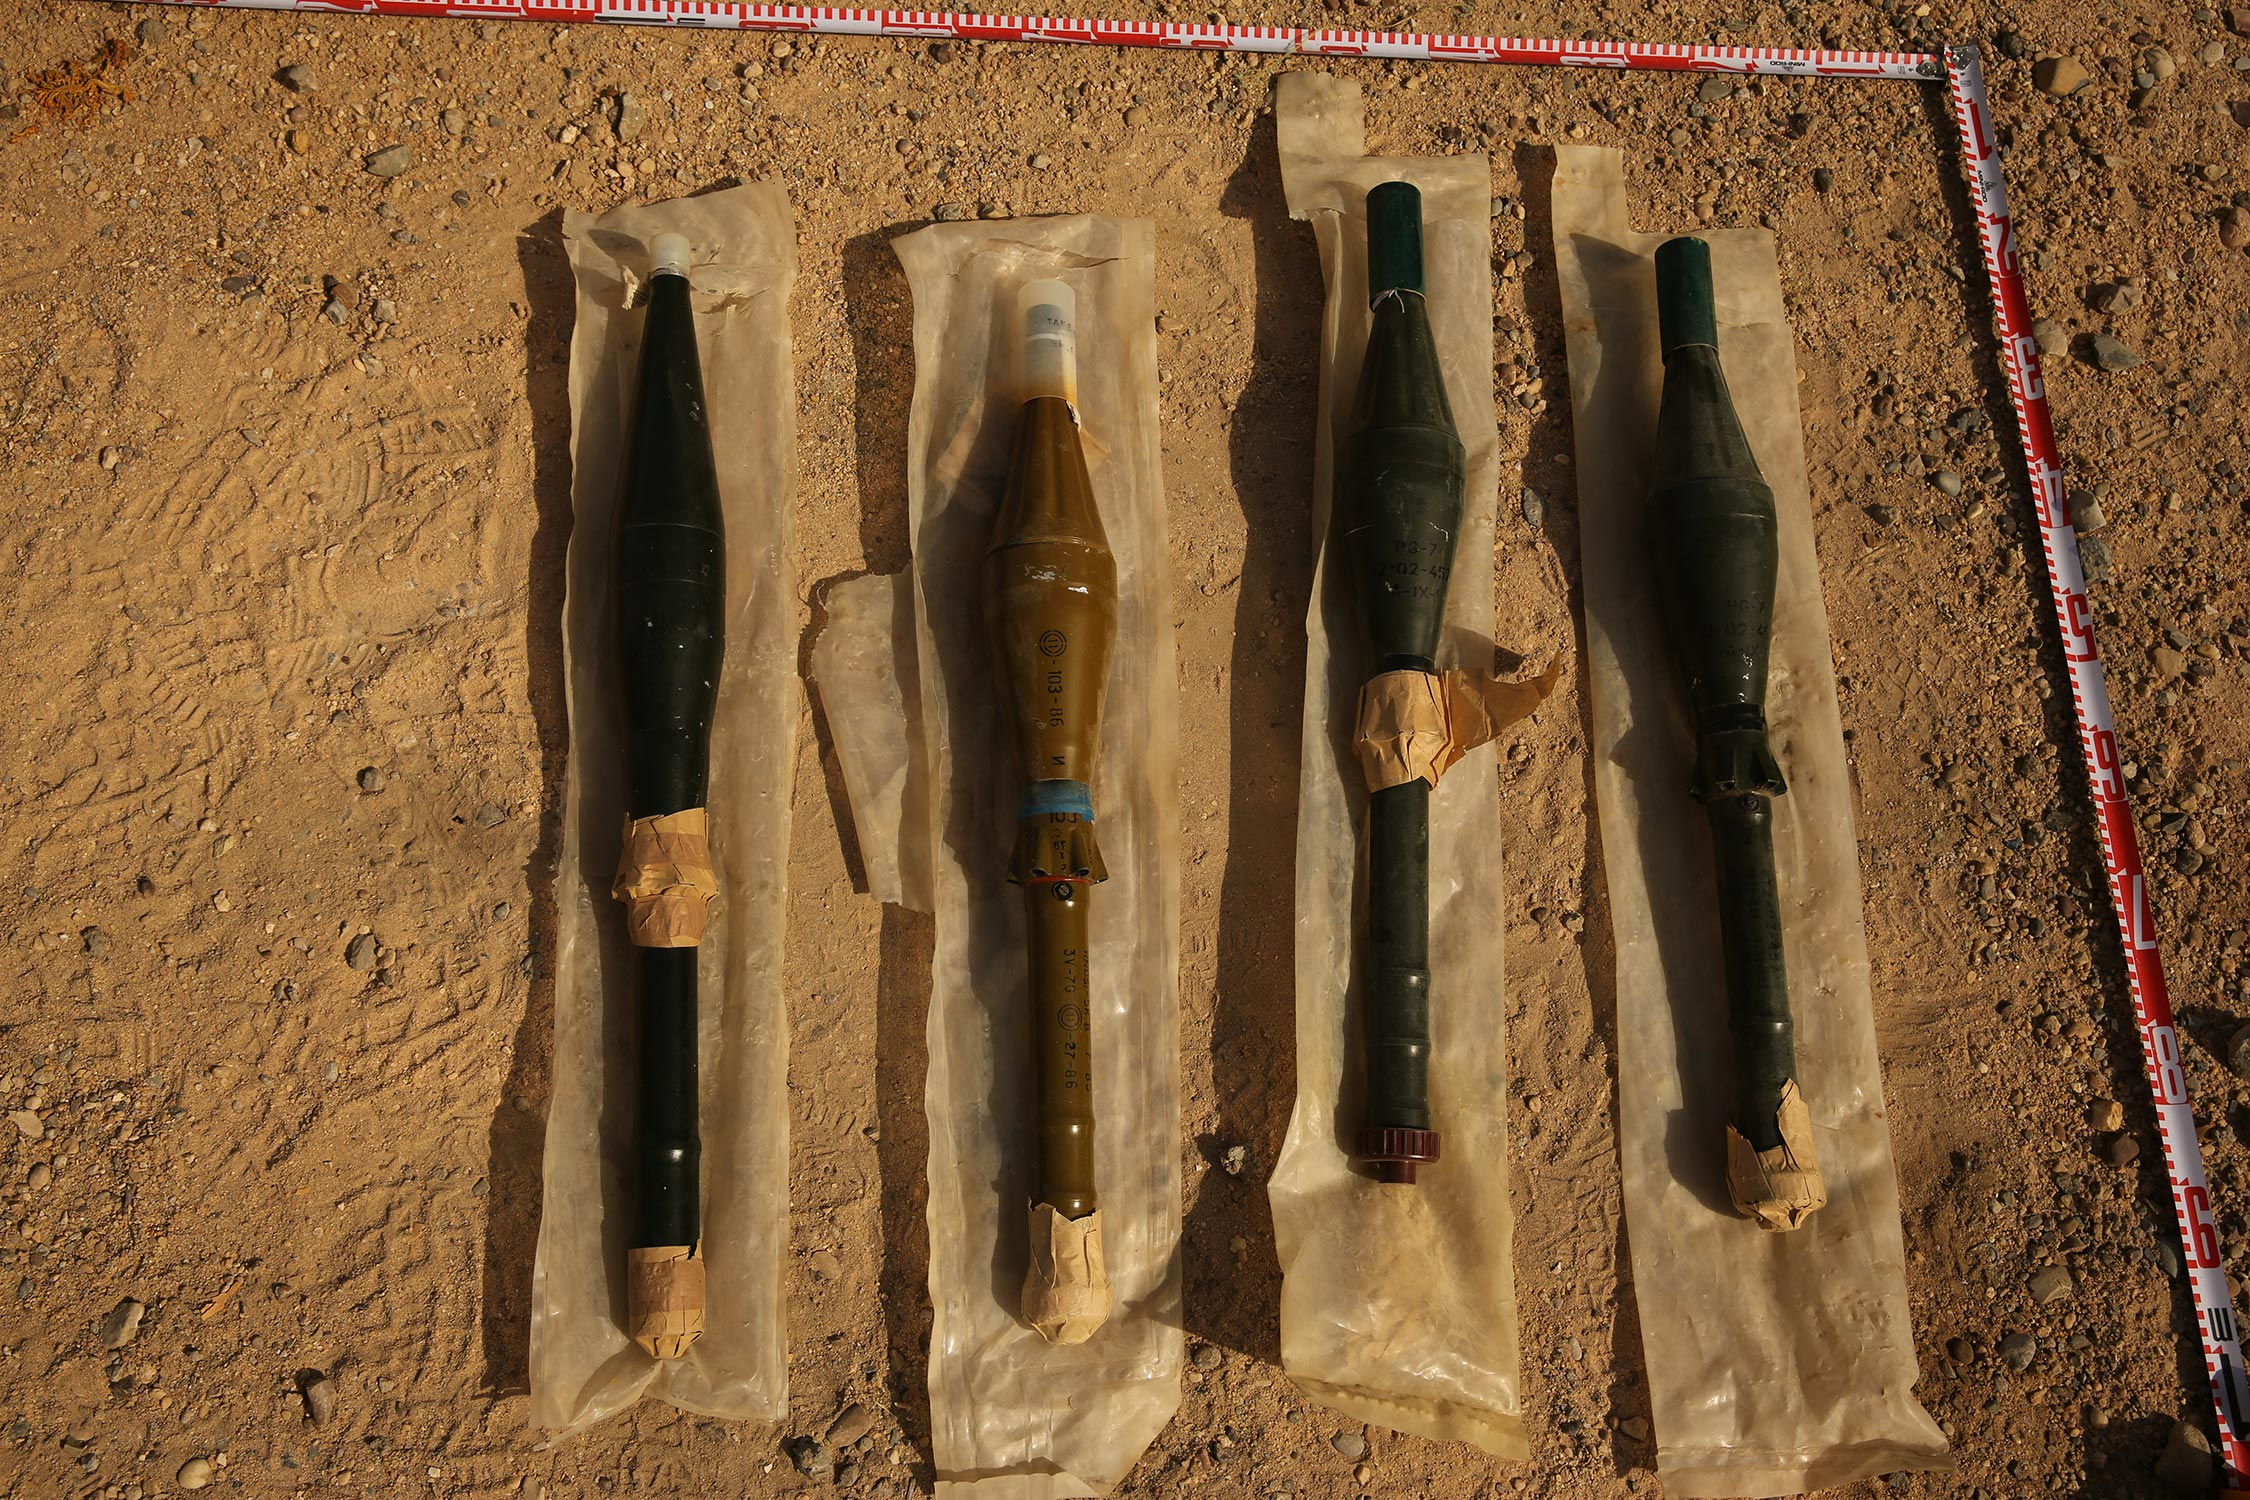 Rockets documented in Baghdad